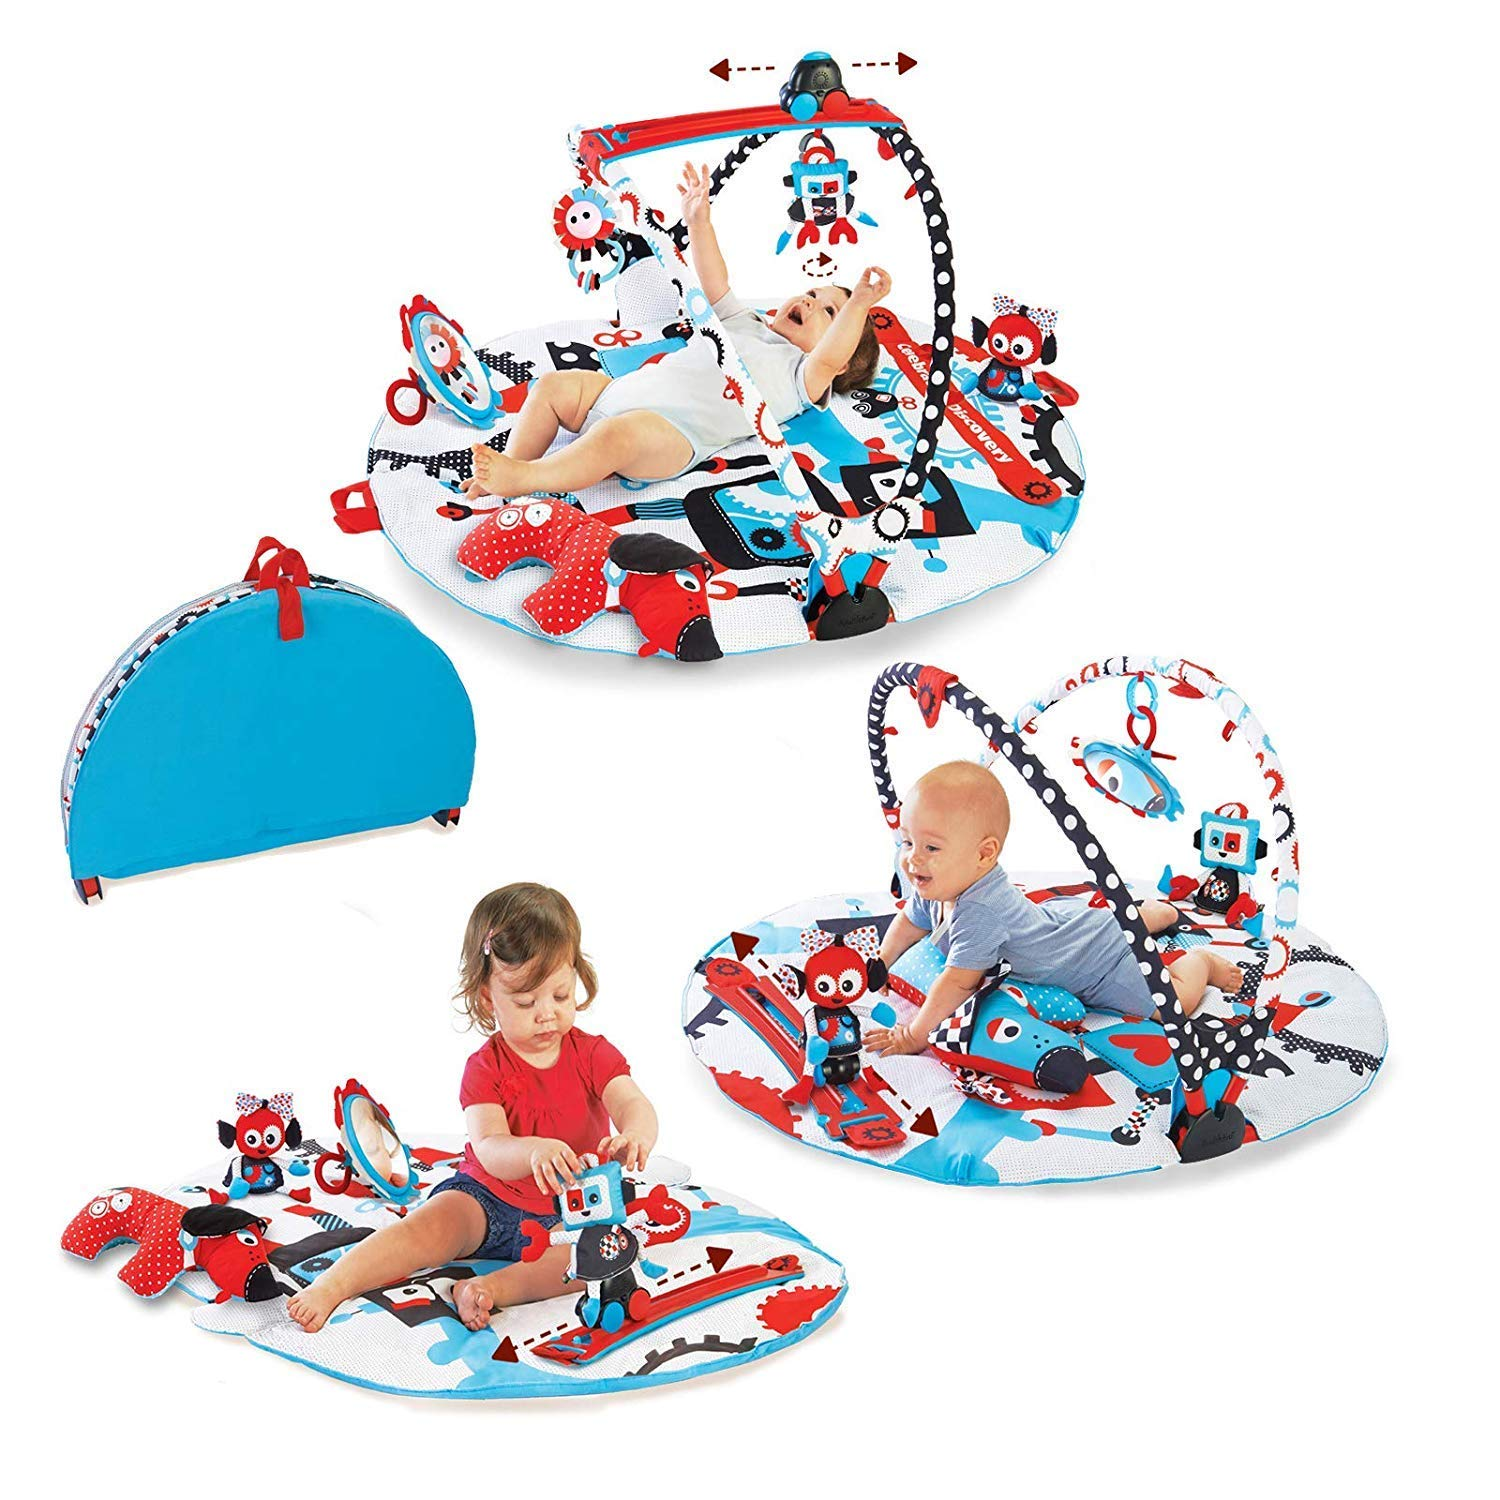 Yookidoo Baby Gym and Play Mat - 3 Stage Accessory Gym with Motorized Robot Track - 20 Development Activities - Age 0-12 Months